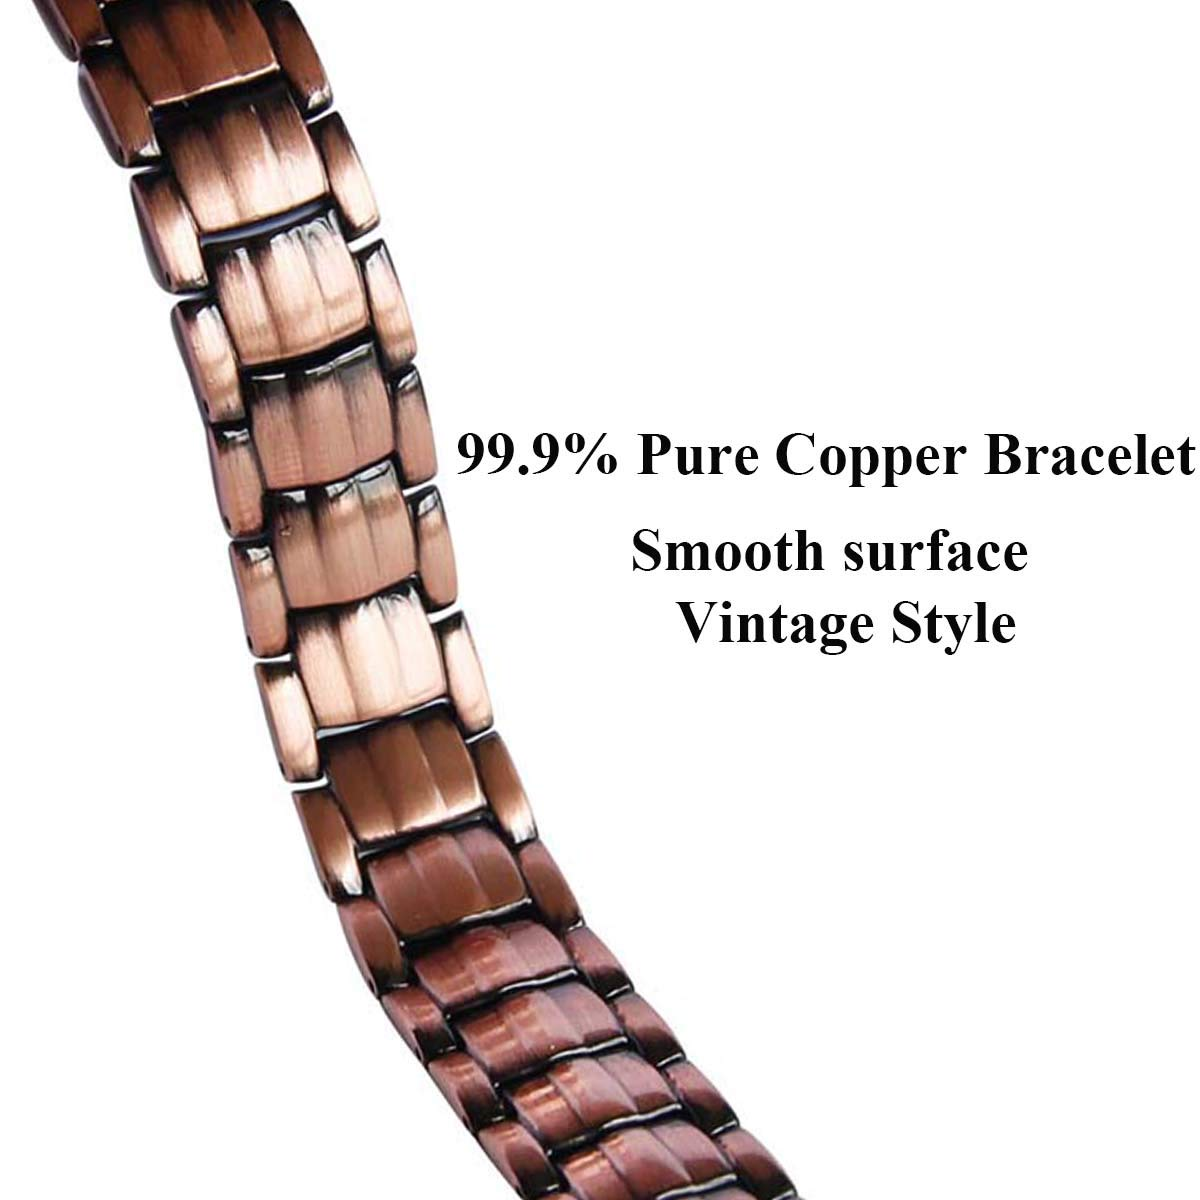 Vinca Mascot Copper Magnetic Bracelet Double Strong Magnets Wristband Therapy for Arthritis Pain Relief, Rose Gold